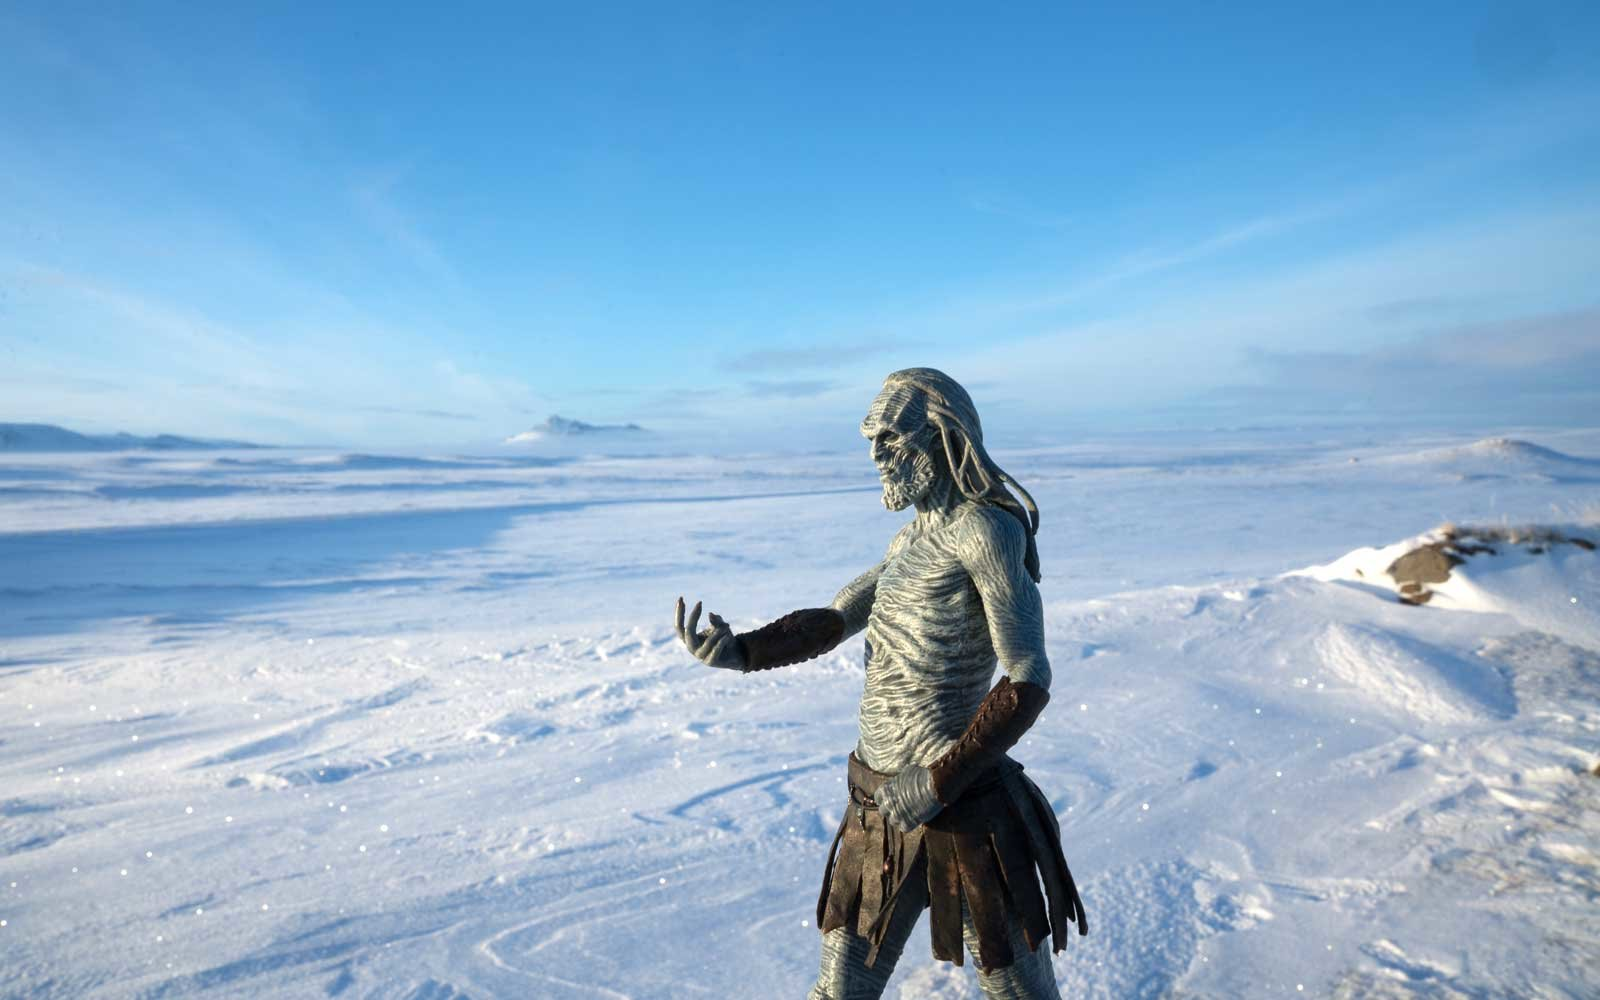 White walker figurine against a blue sky in Iceland